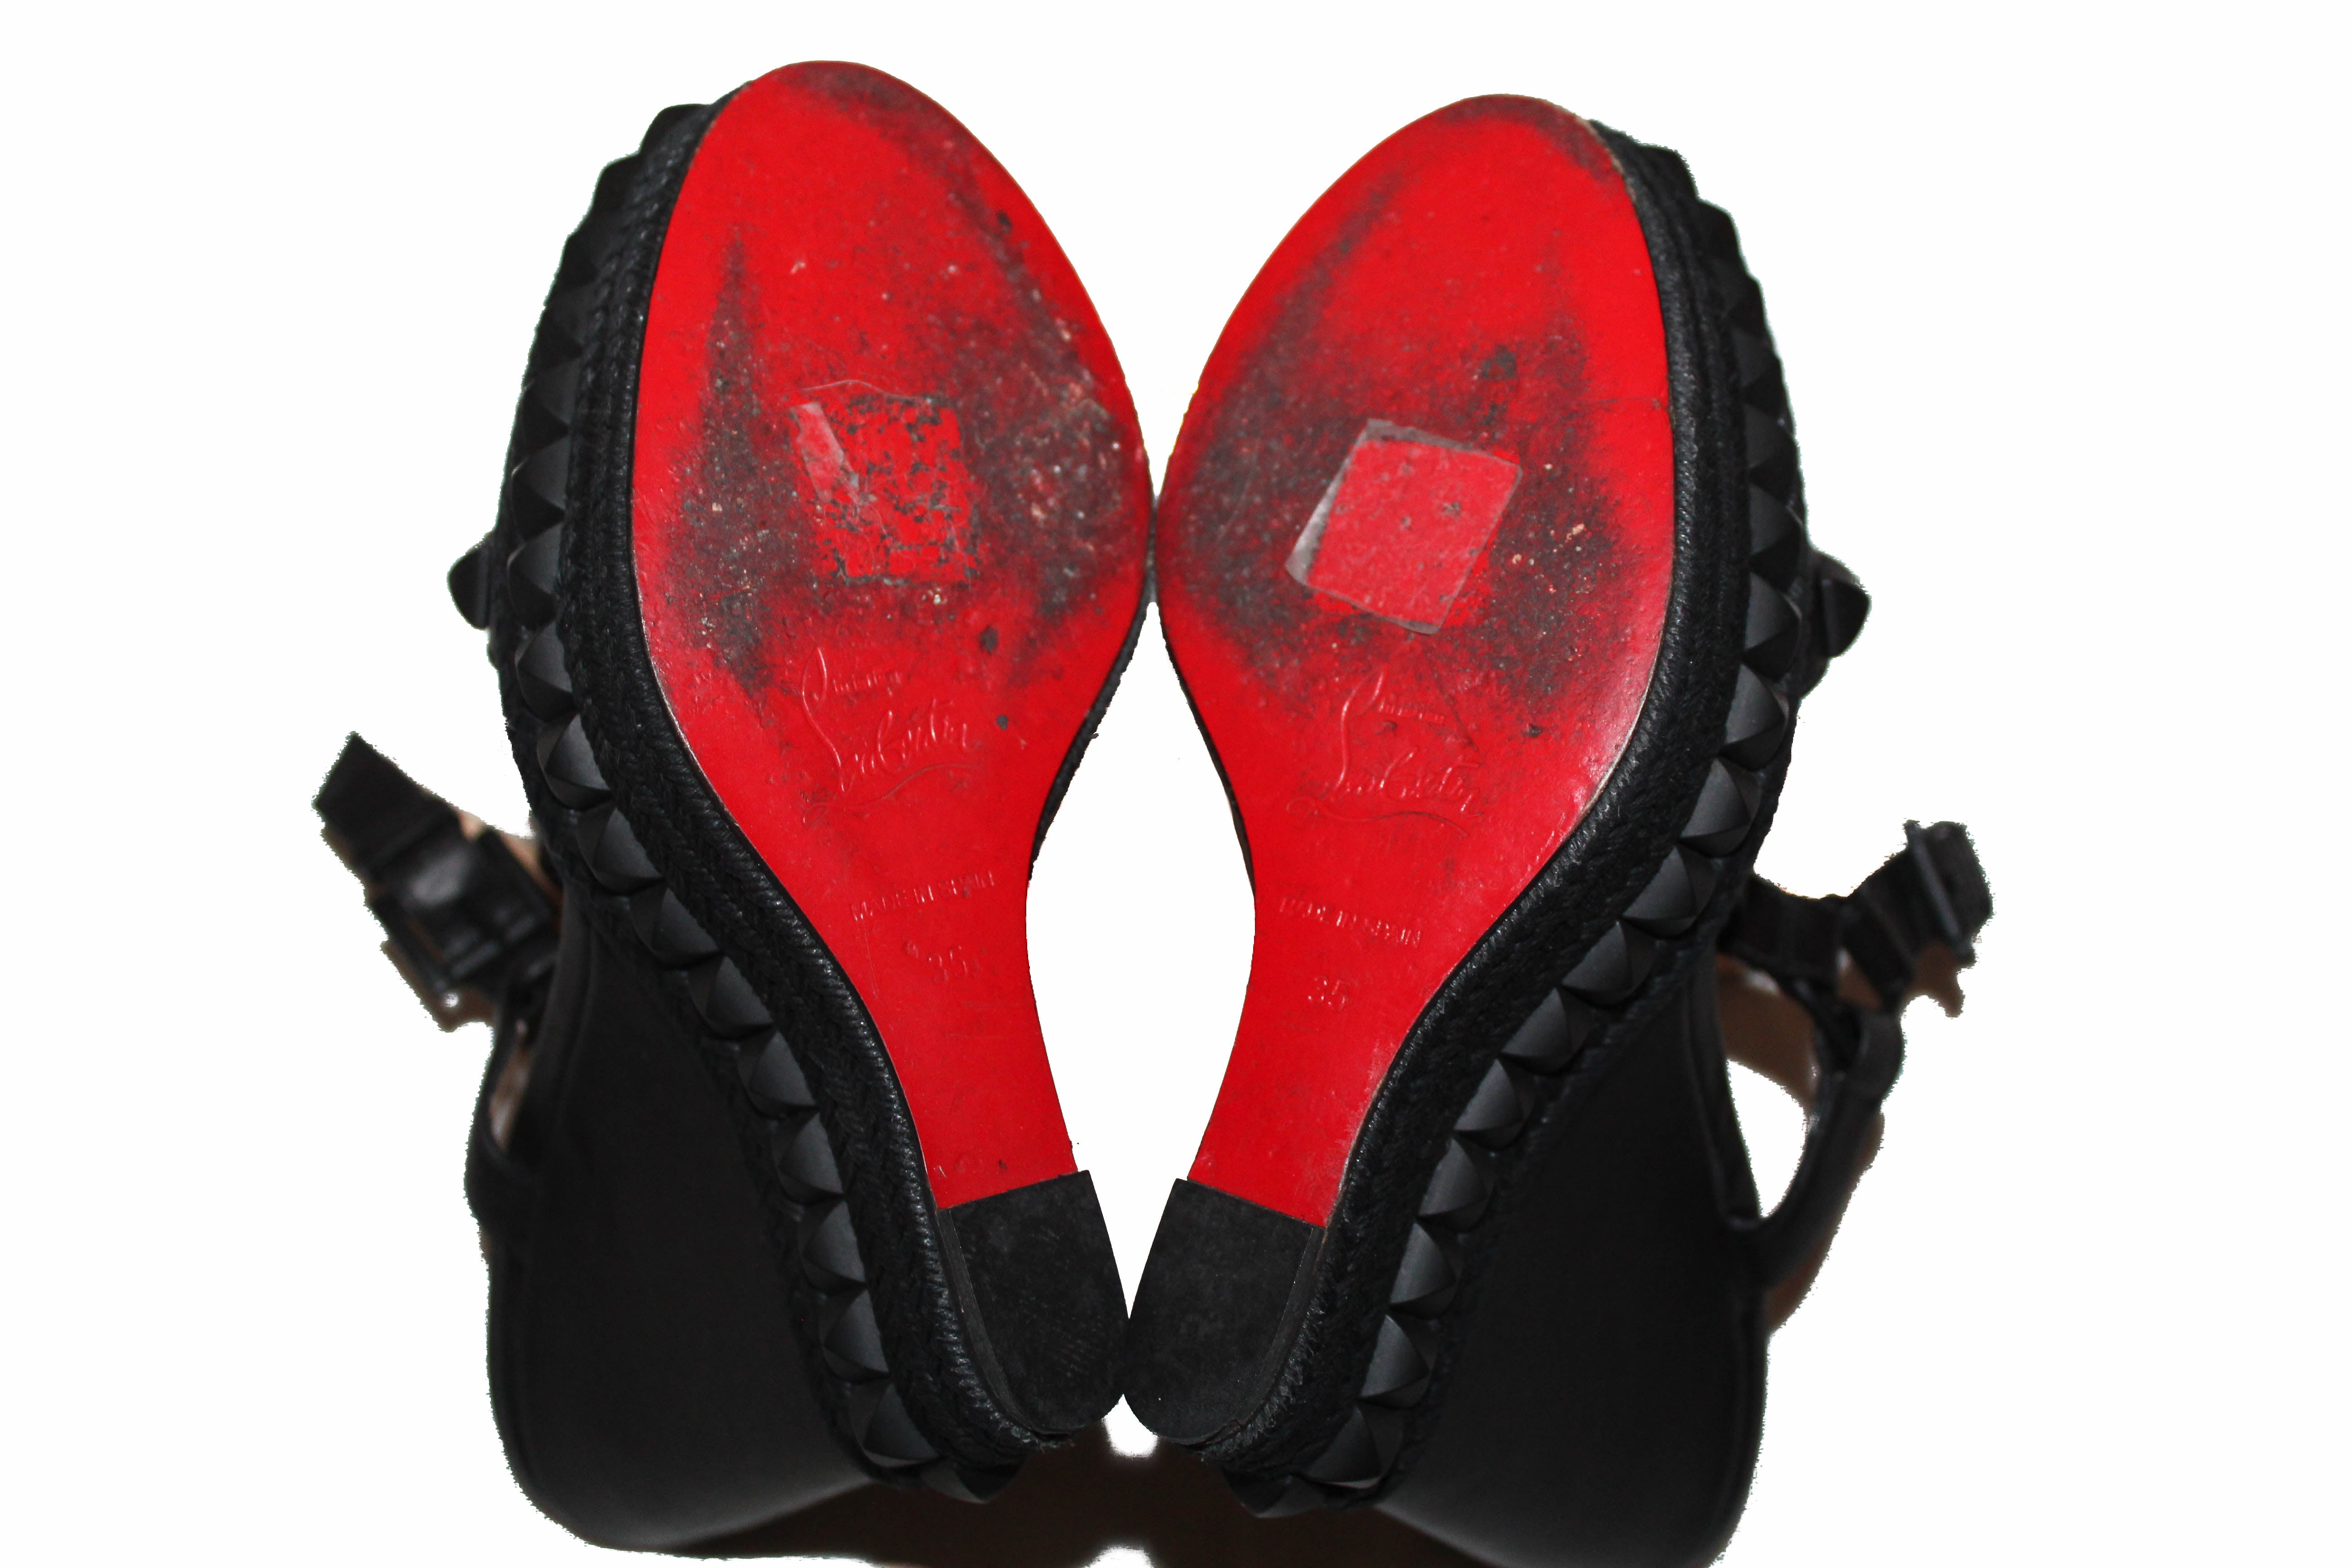 Authentic Christian Louboutin Black Cataclou 140 Wedge Sandals Shoes Size 35